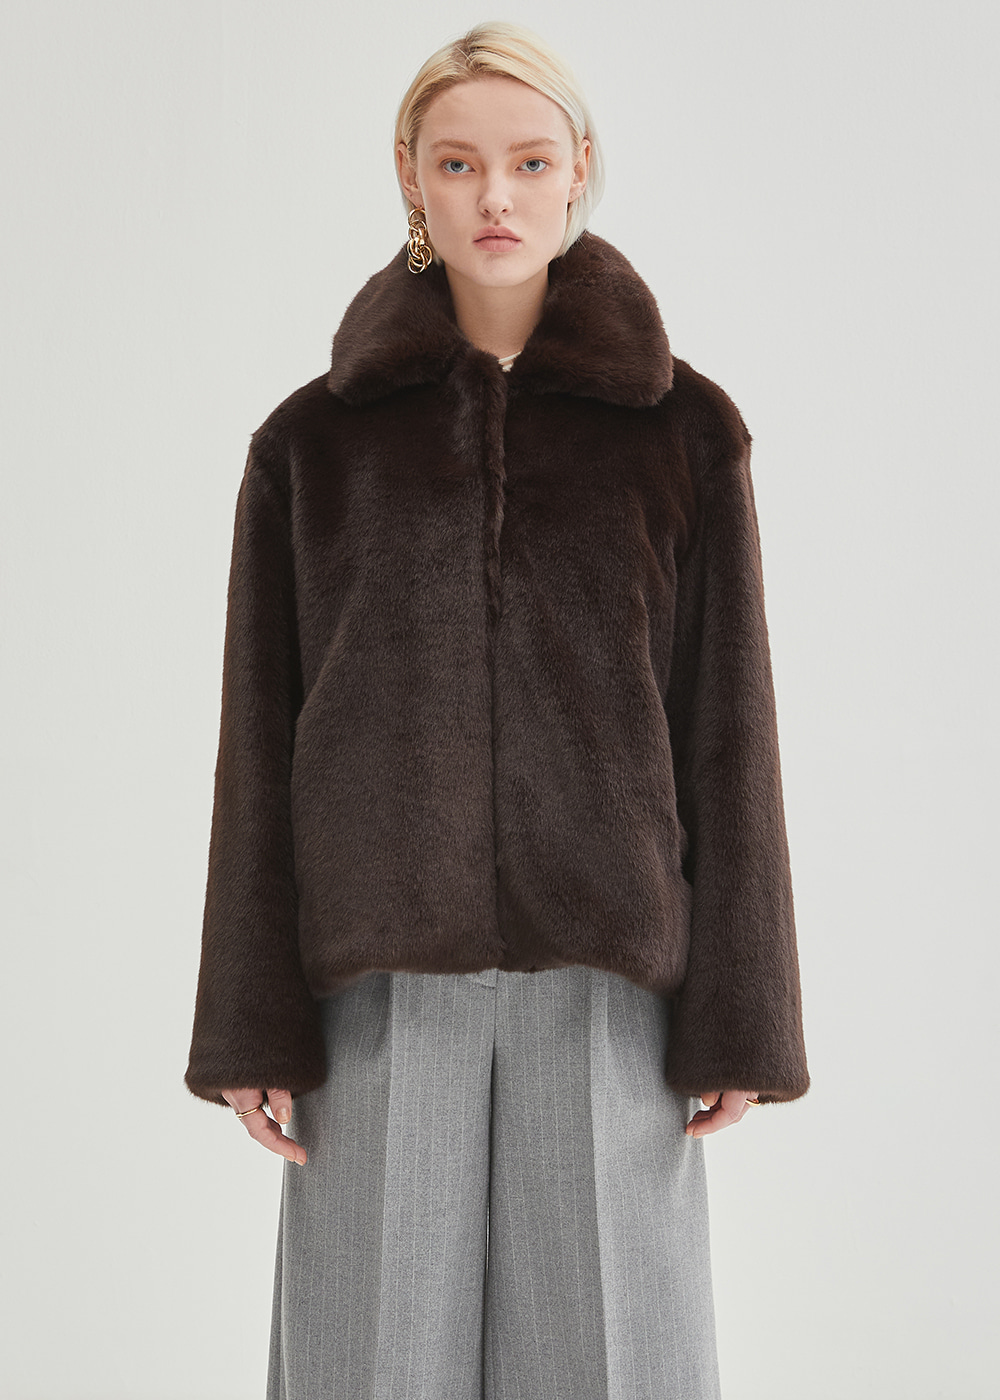 One Collar Mink Jacket - Brown